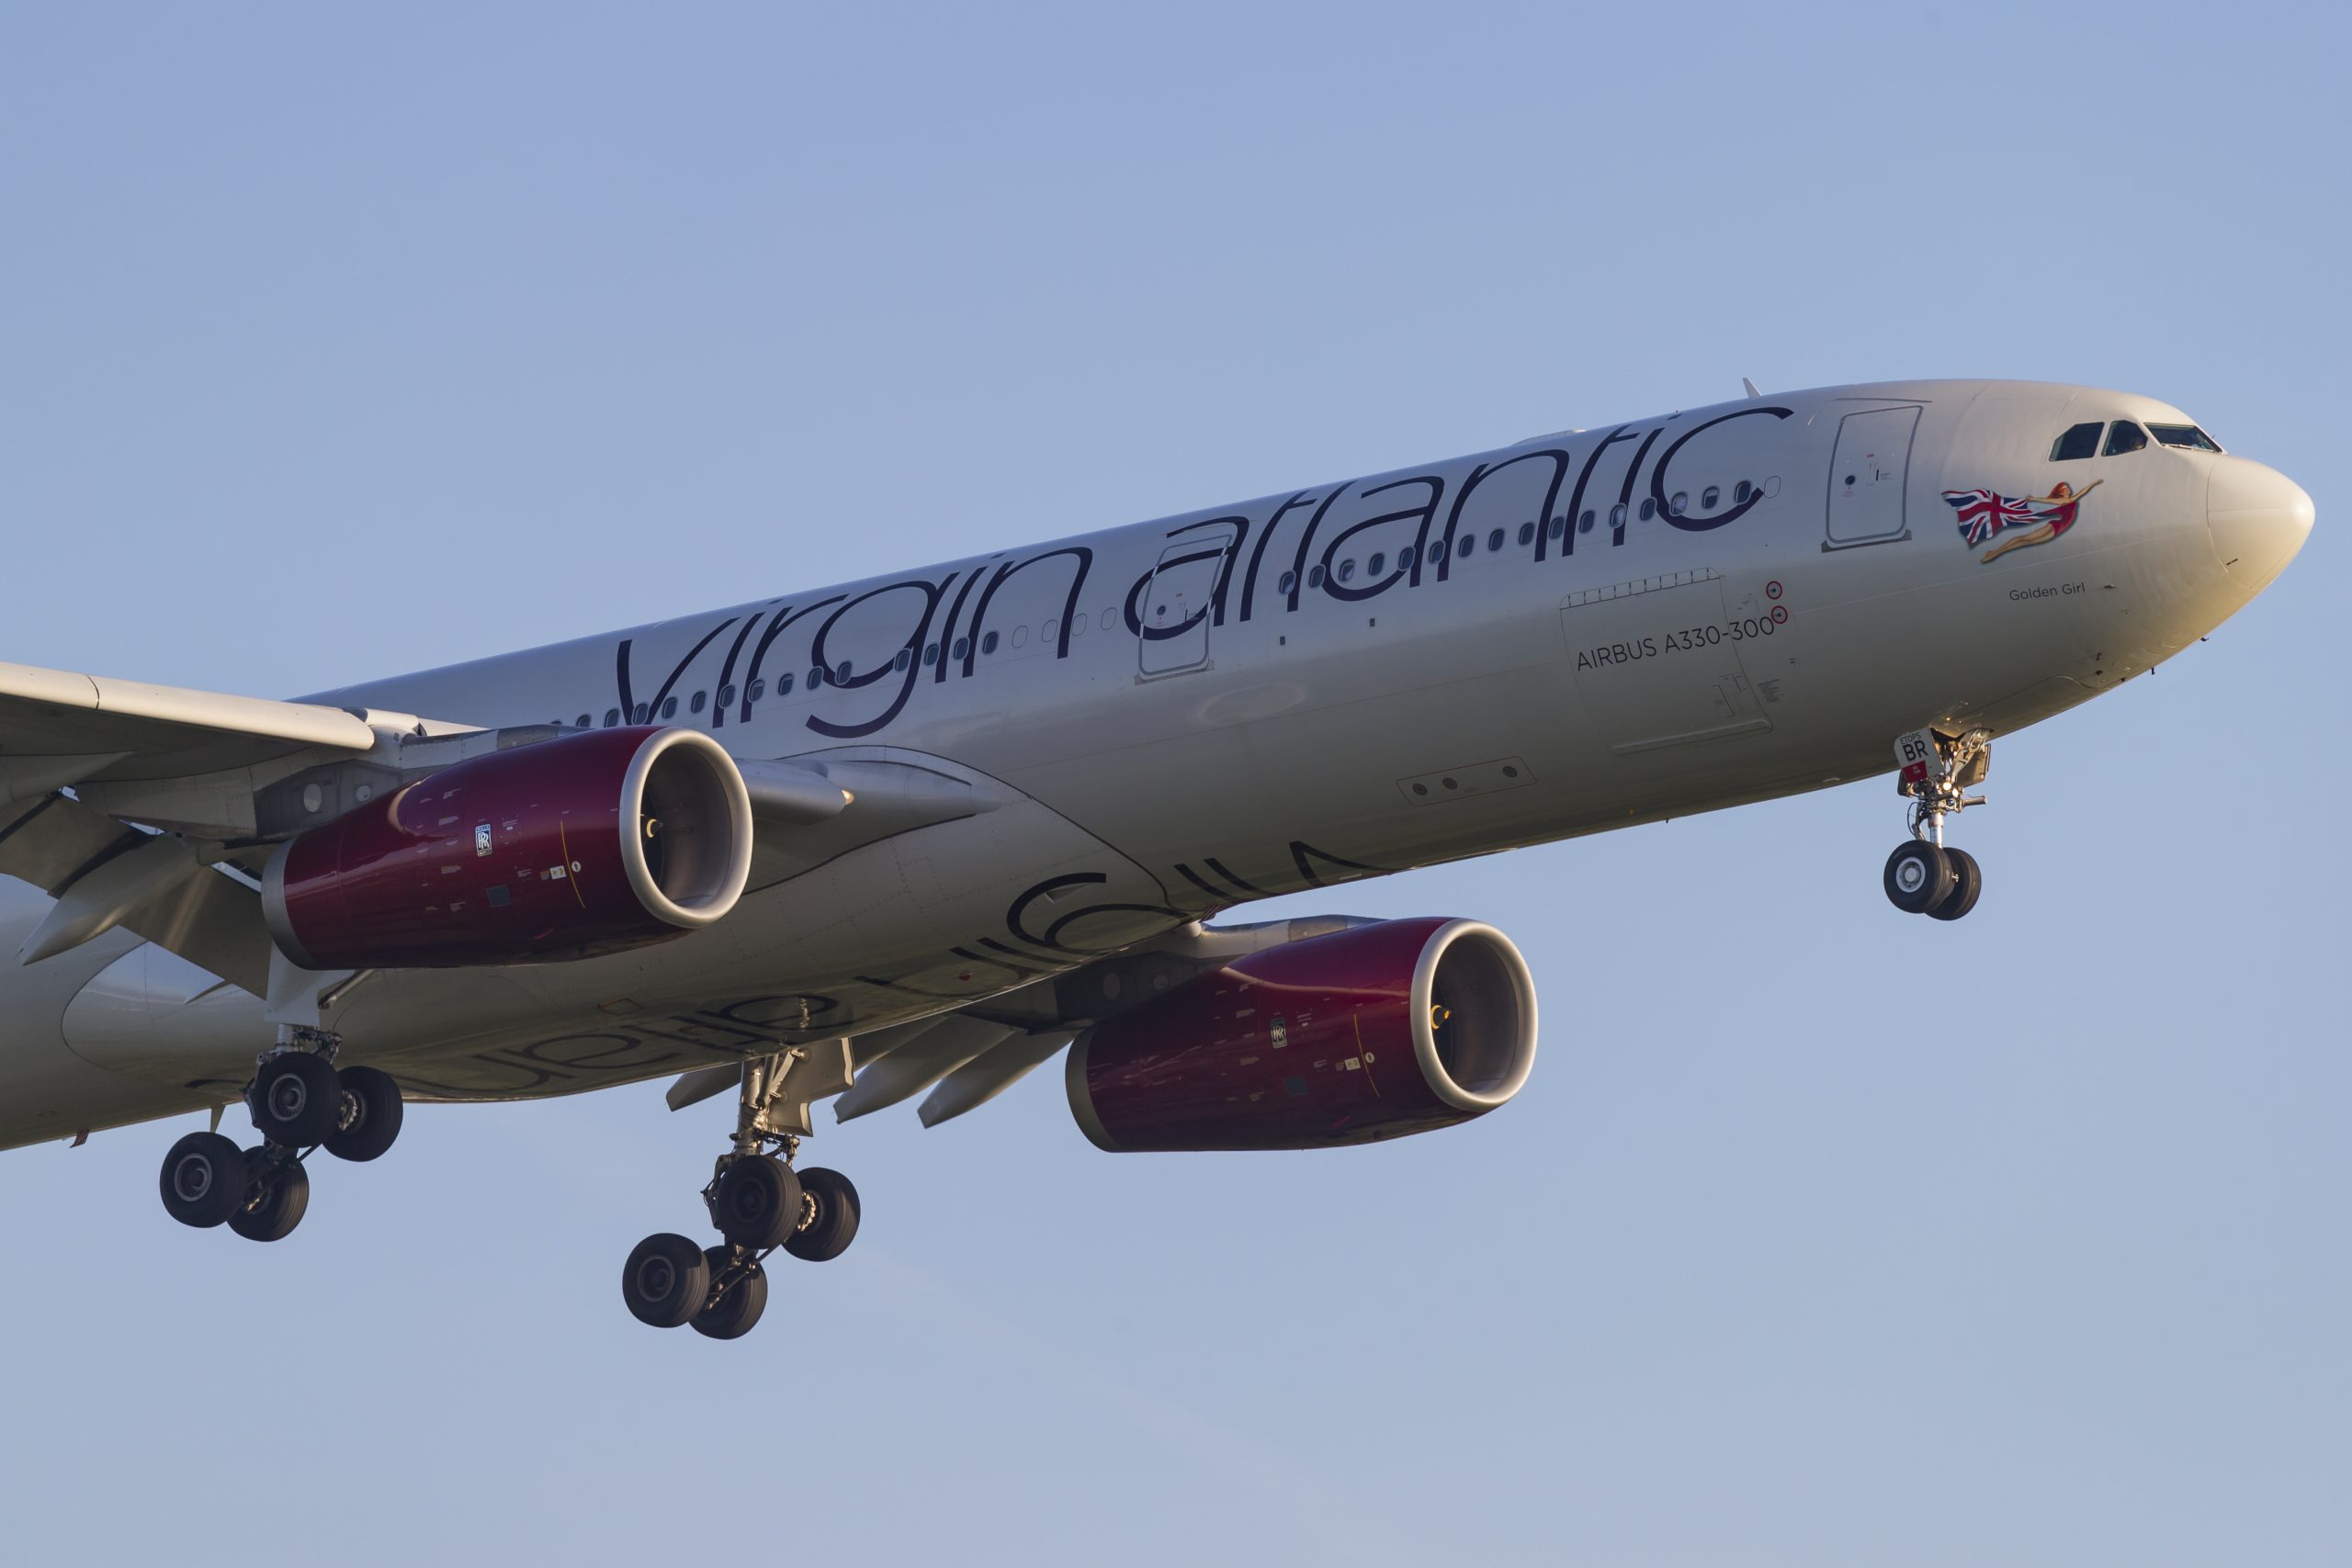 En Airbus A330-300 fra det britiske langdistanceflyselskab Virgin Atlantic. Foto: © Thorbjørn Brunander Sund, Danish Aviation Photo